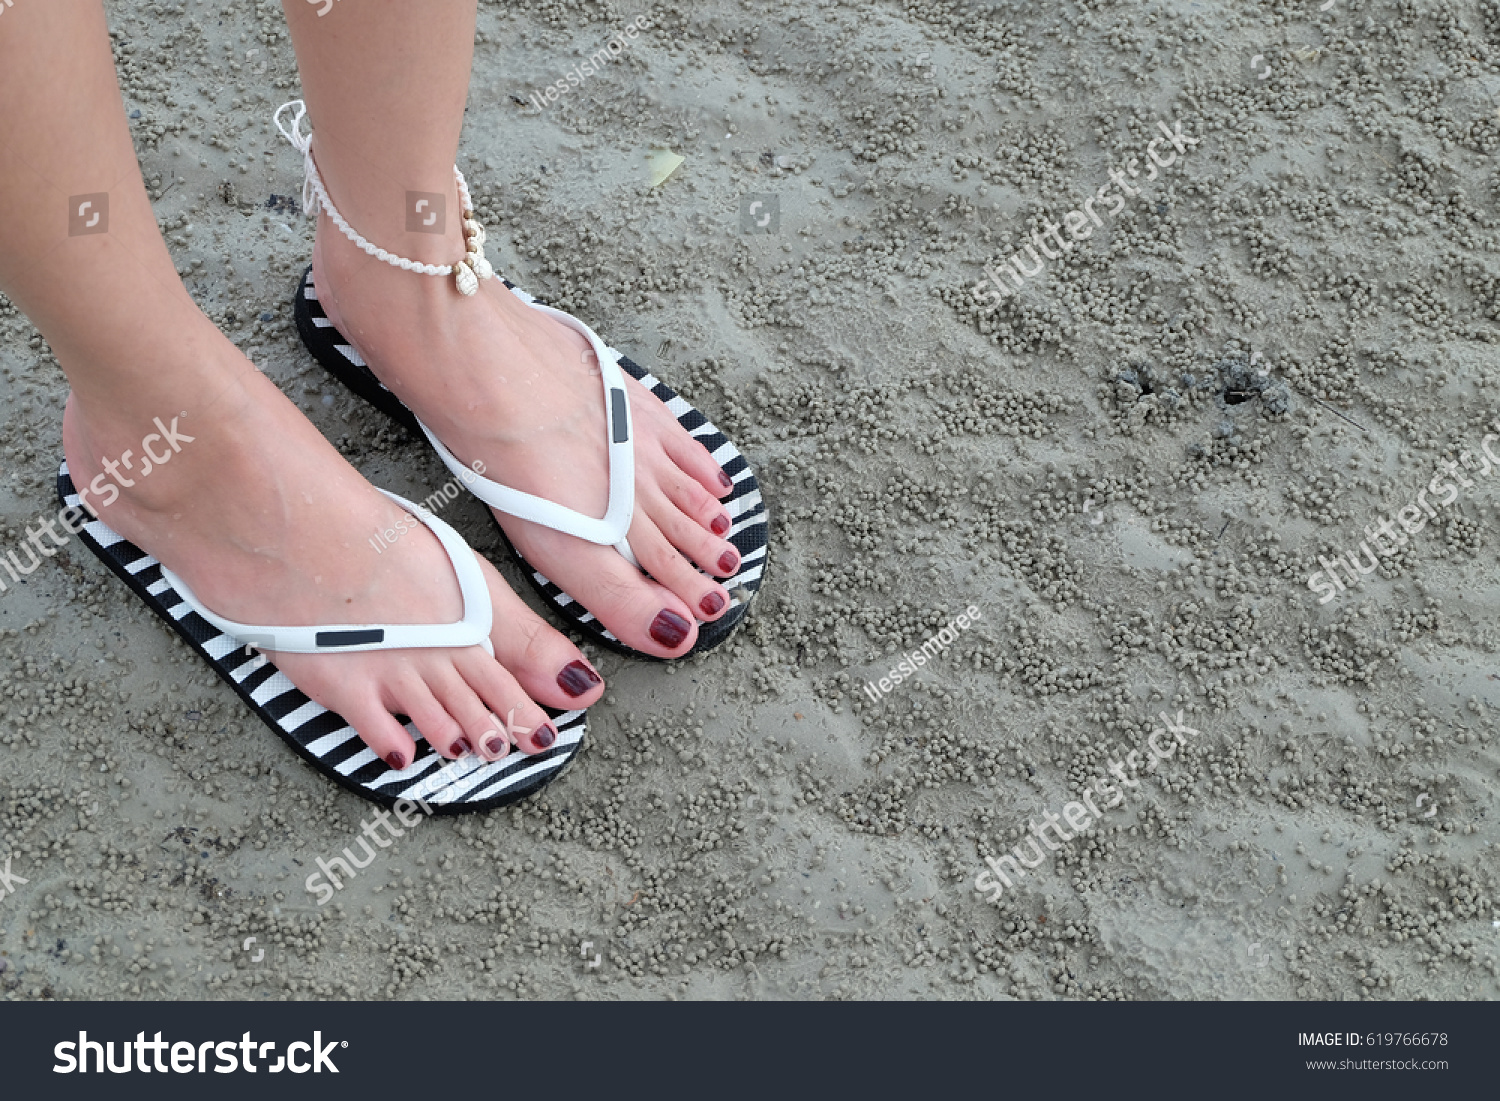 da541062397f79 Close Girls Feet Walking Flip Flops Stock Photo (Edit Now) 619766678 ...